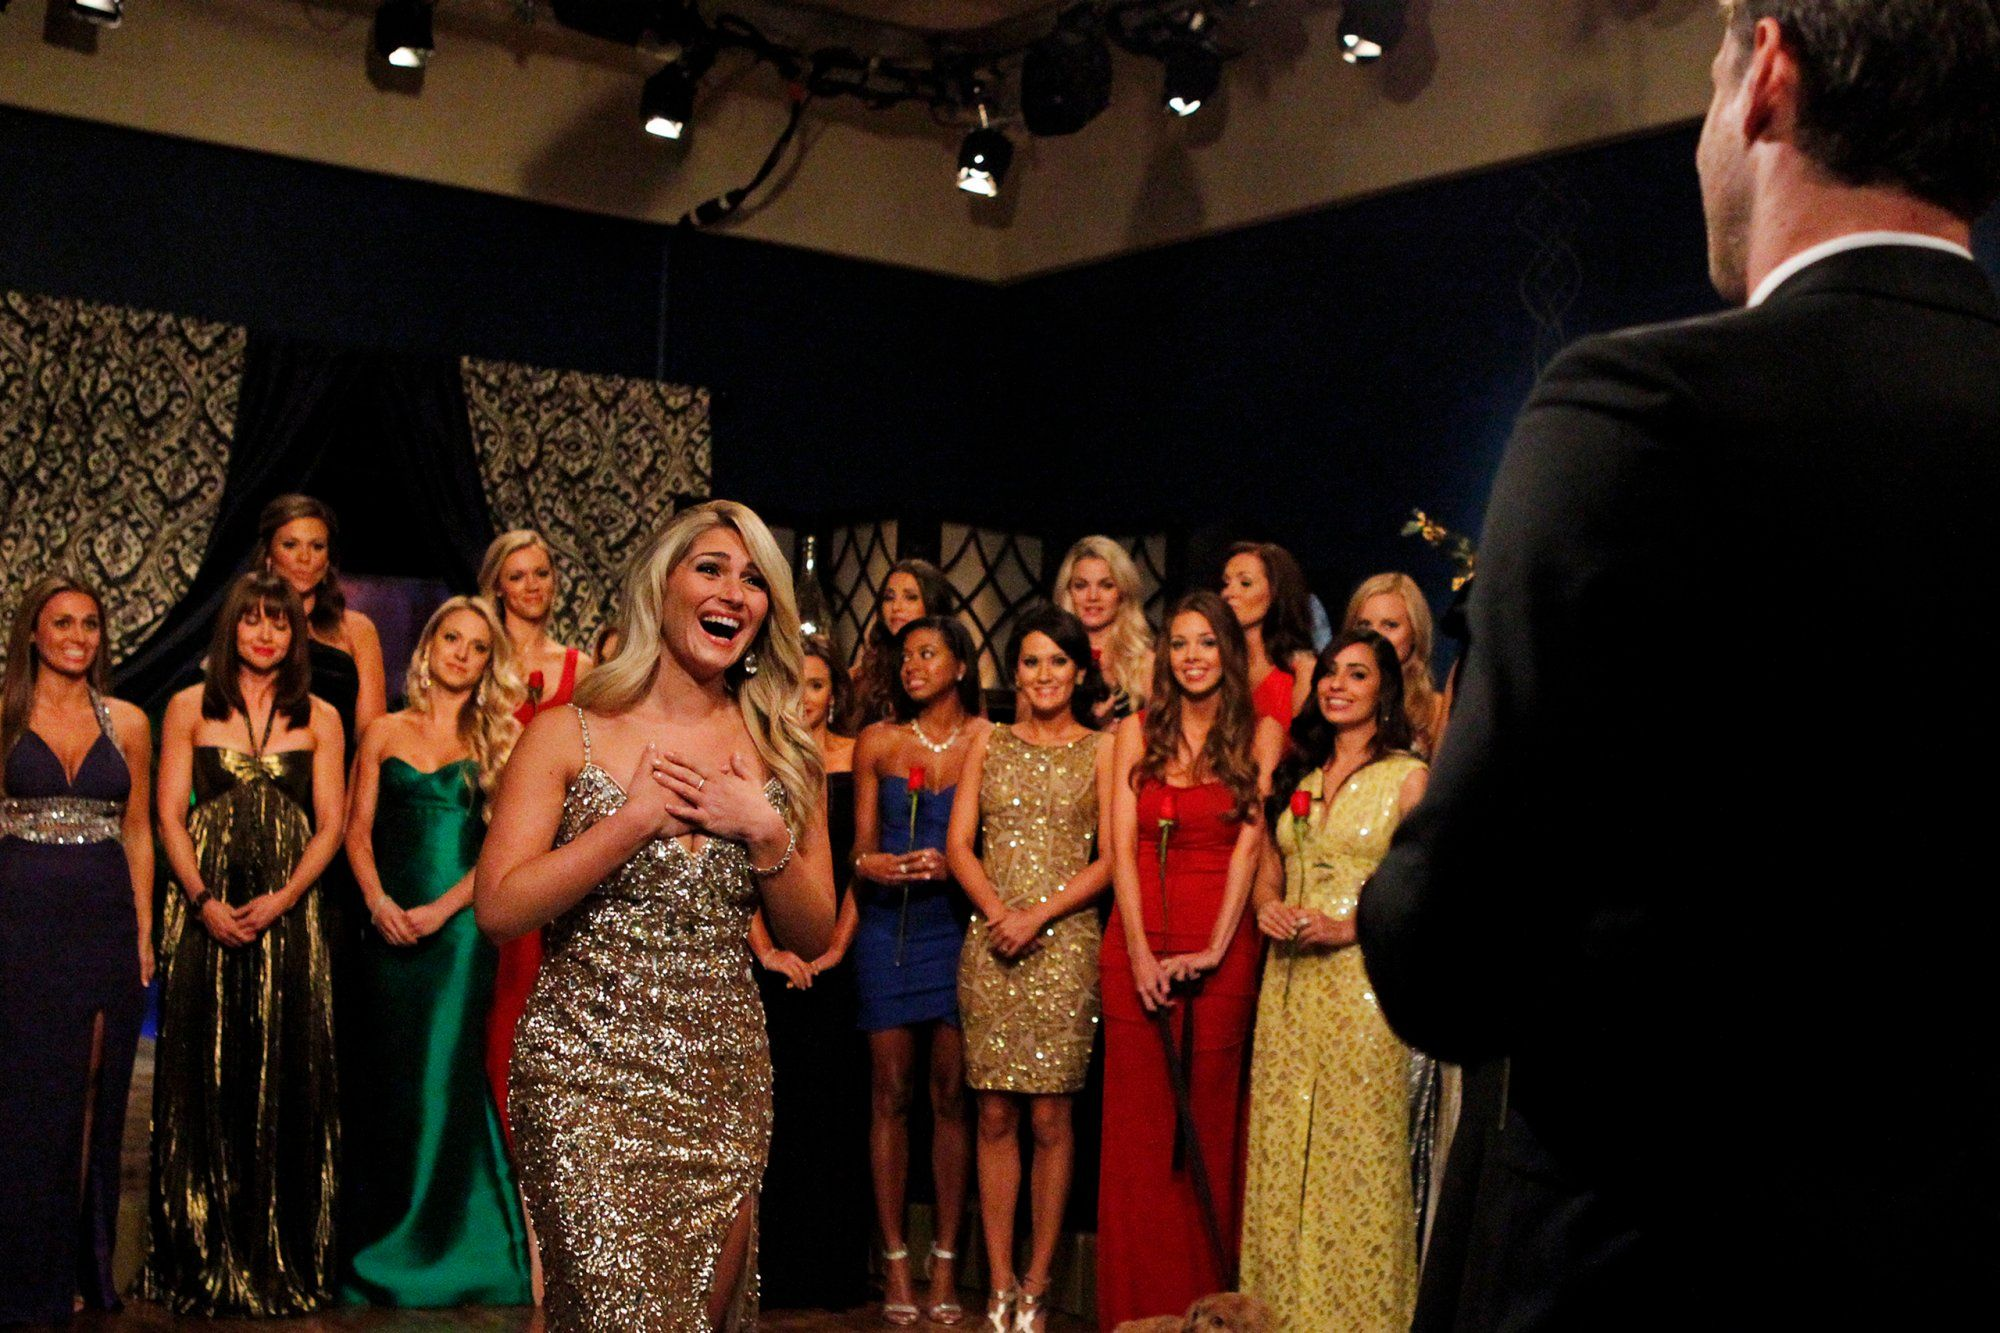 15 Things You Didn't Know About The Bachelor